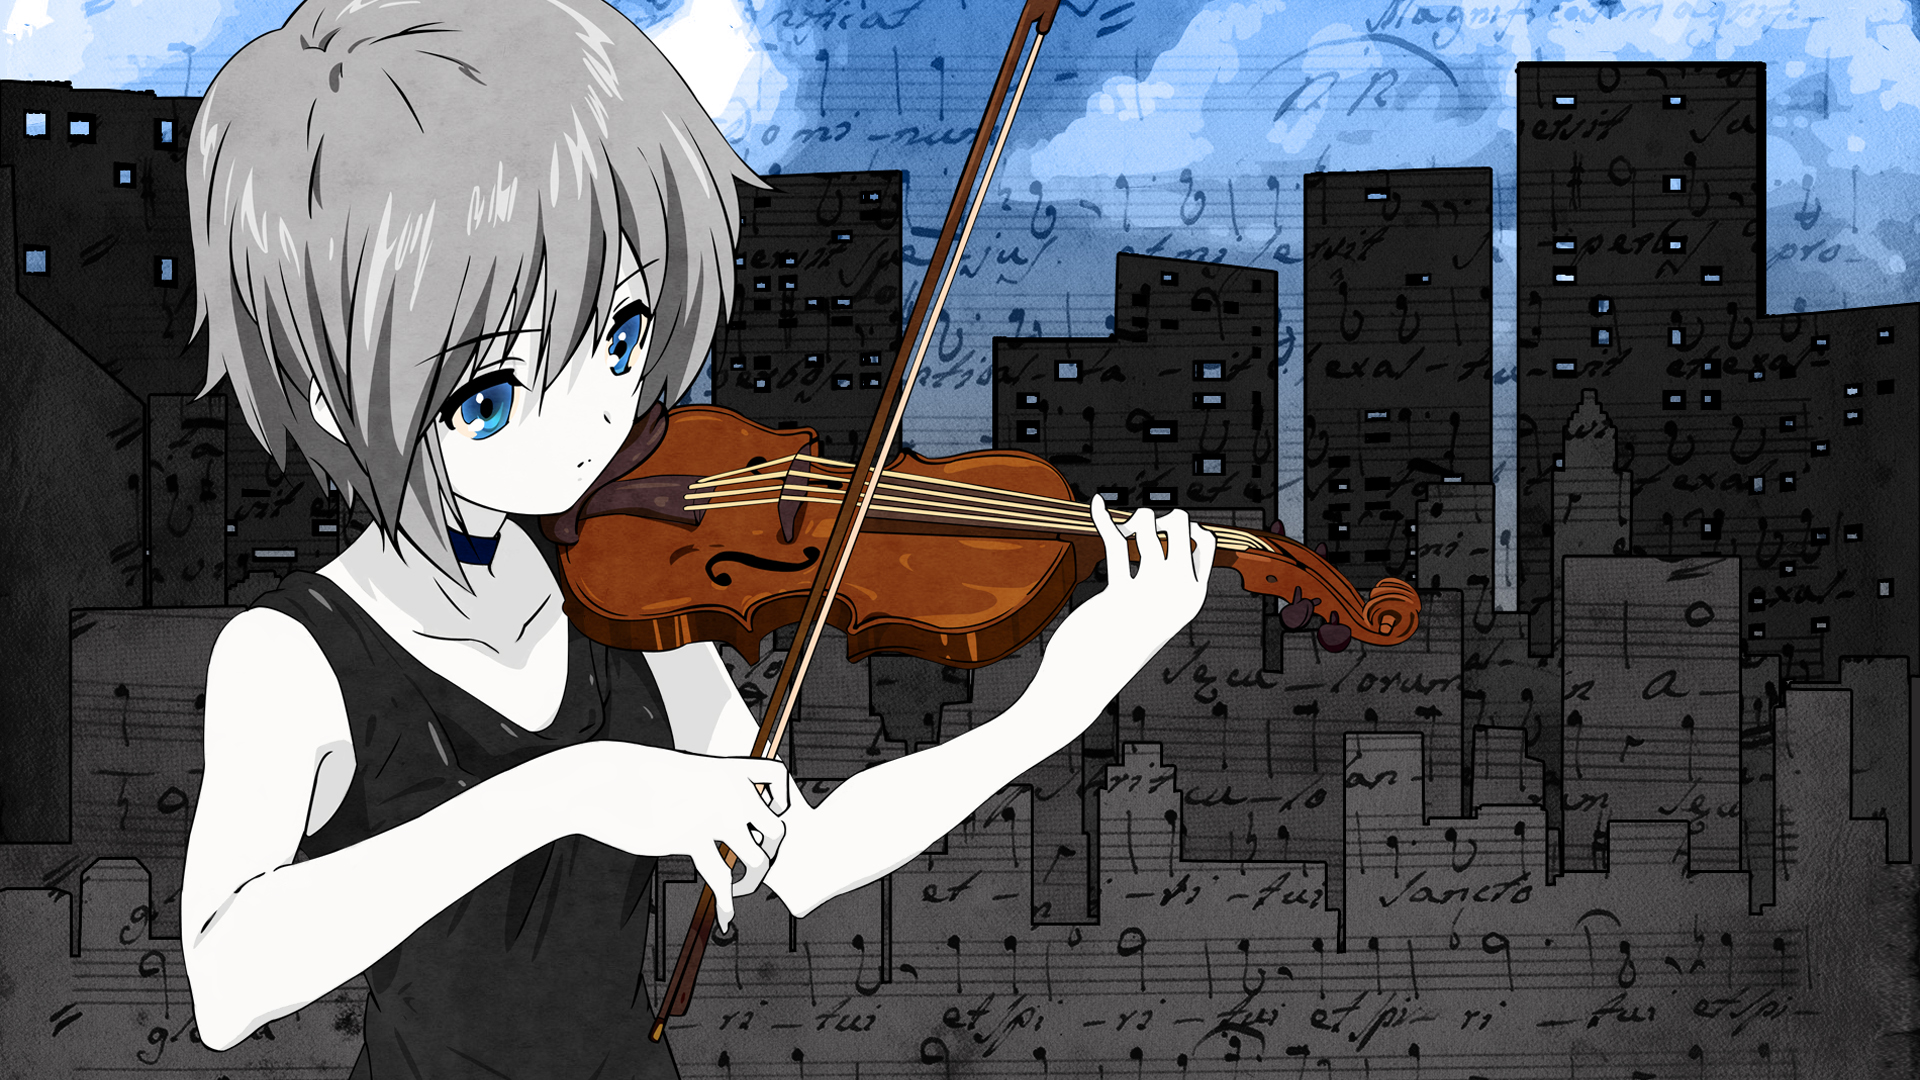 The Melancholy Of Haruhi Suzumiya Art - ID: 75039 - Art Abyss